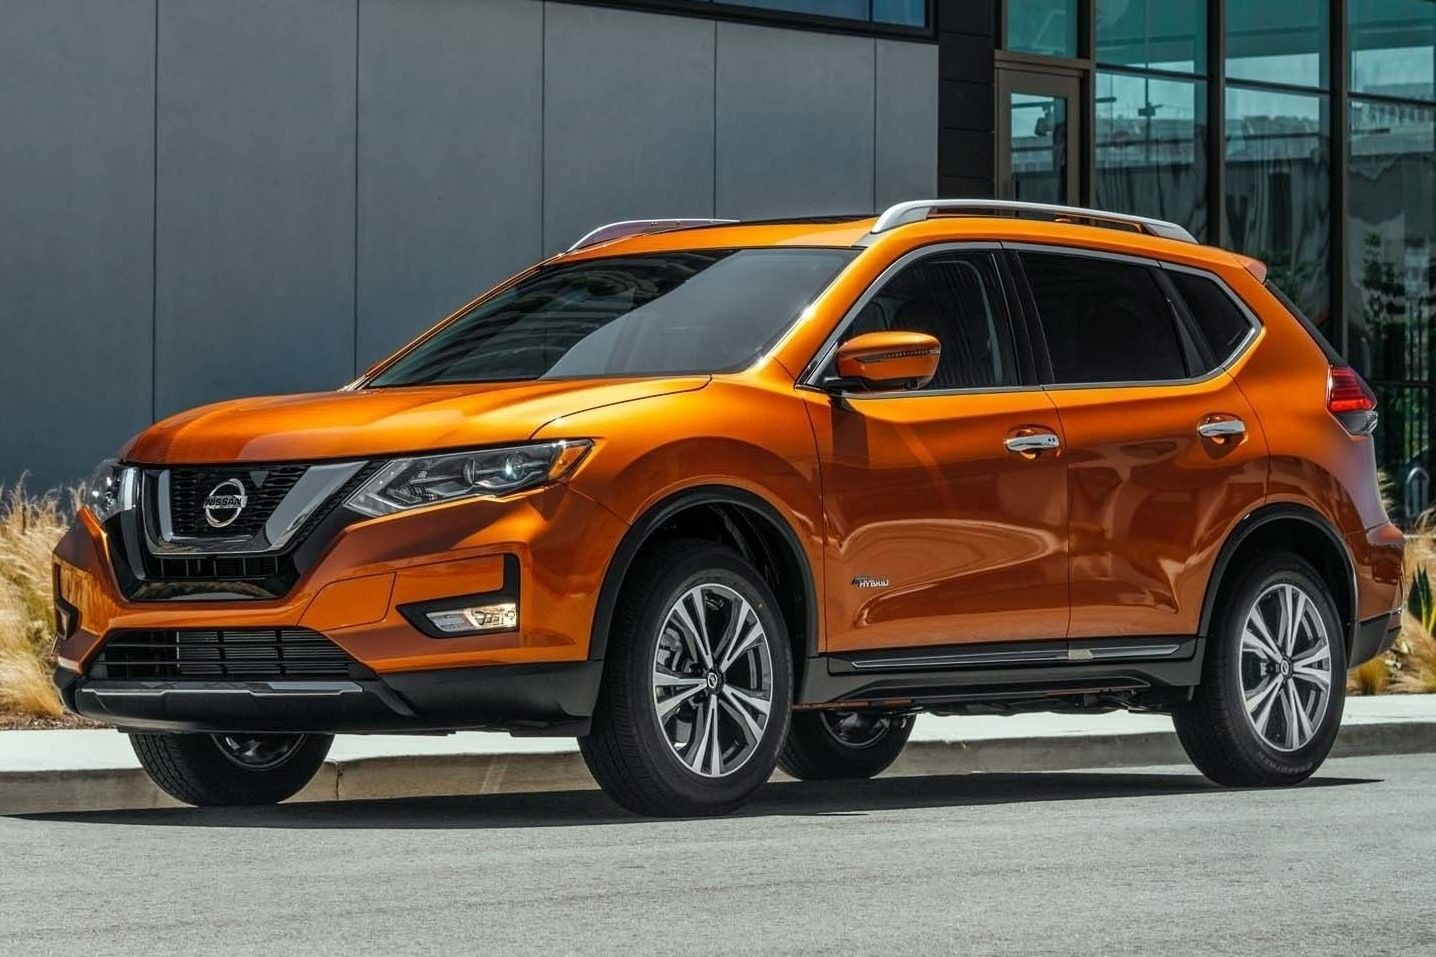 2019 Nissan Rogue Hybrid Interior, Exterior and Review